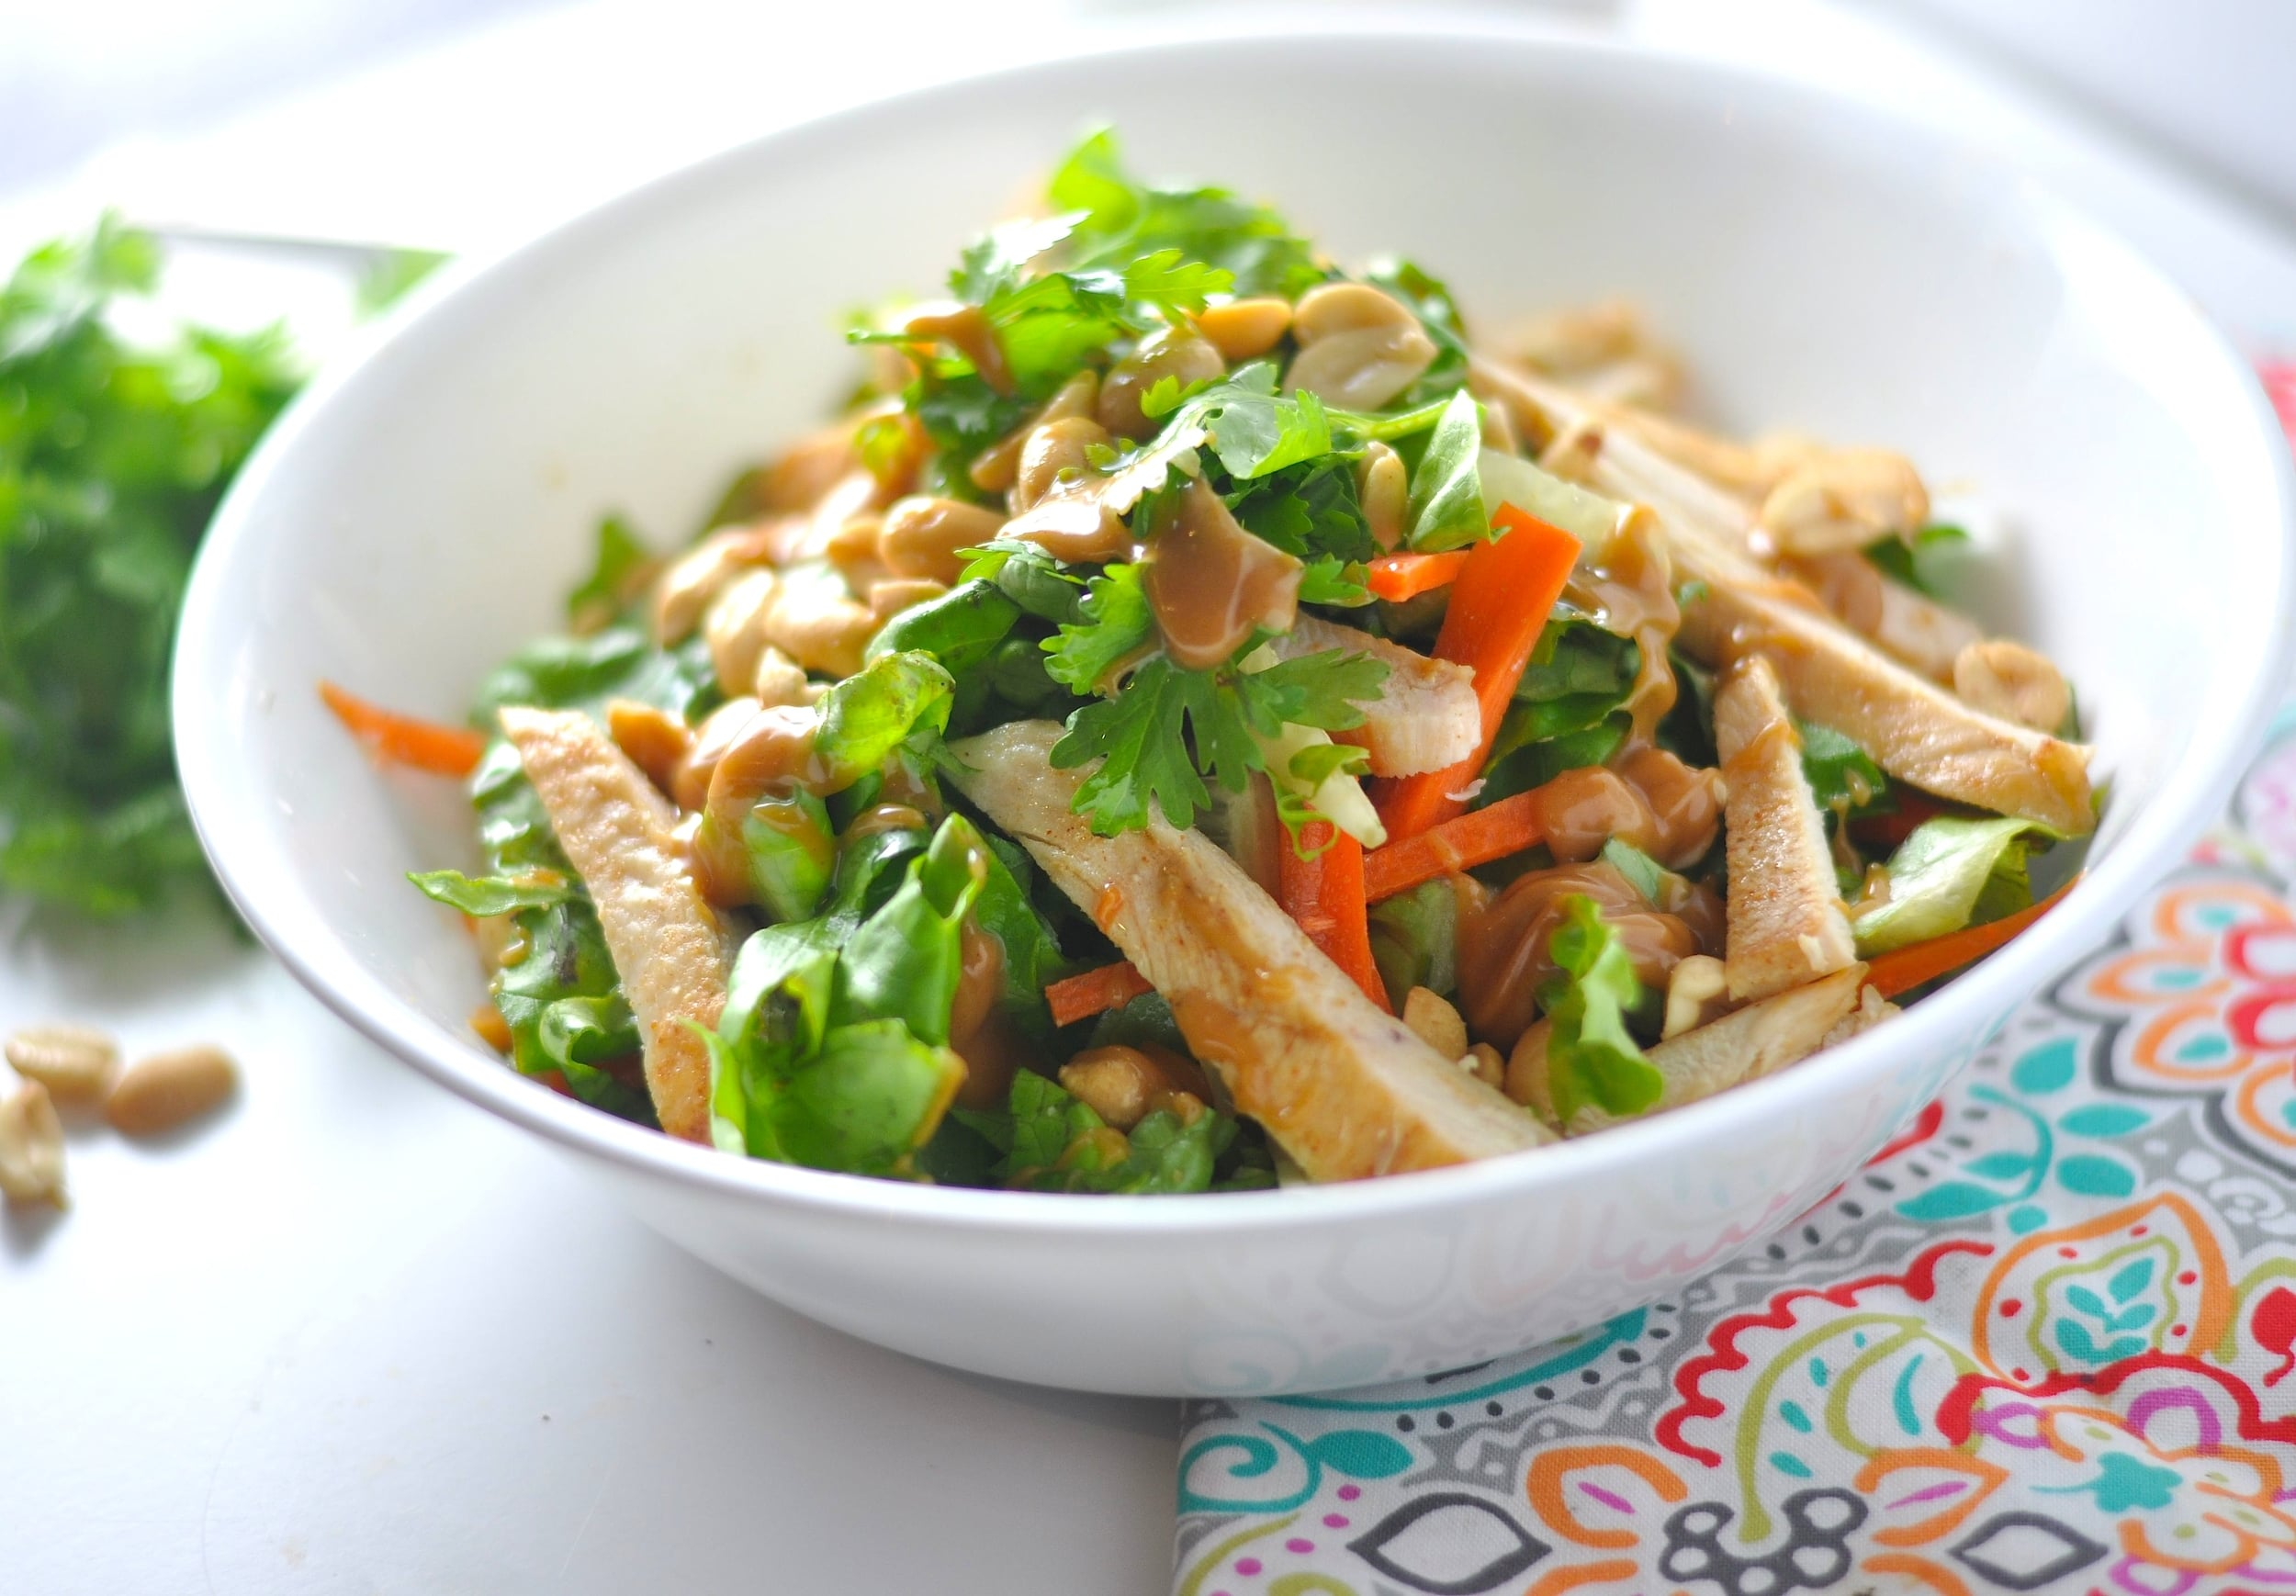 Low Carb Thai Chopped Salad with Creamy Peanut Dressing